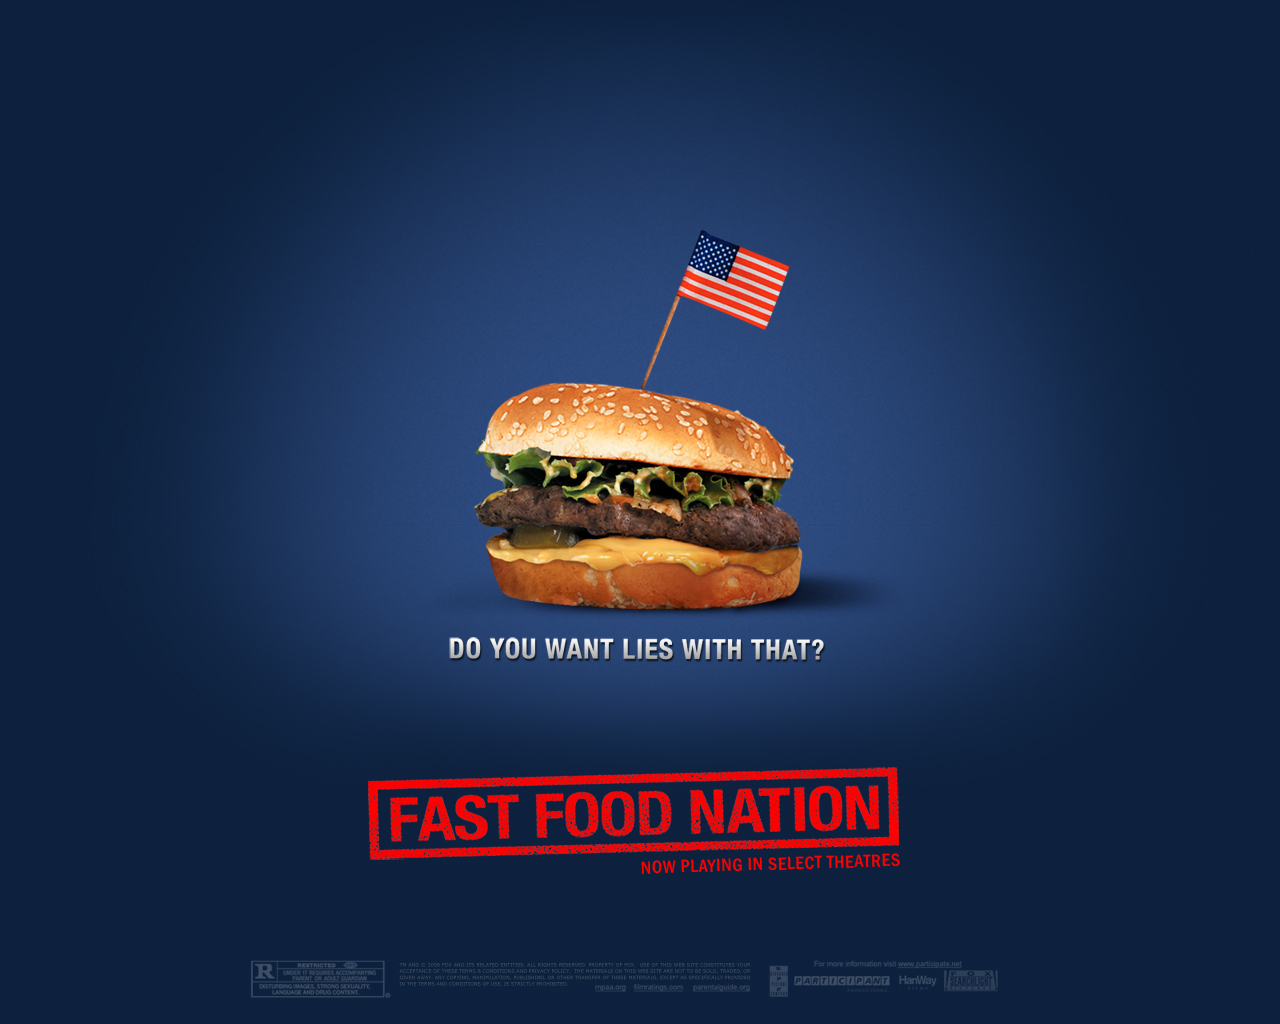 Fast Food Nation: The Dark Side of the All-American Meal Summary